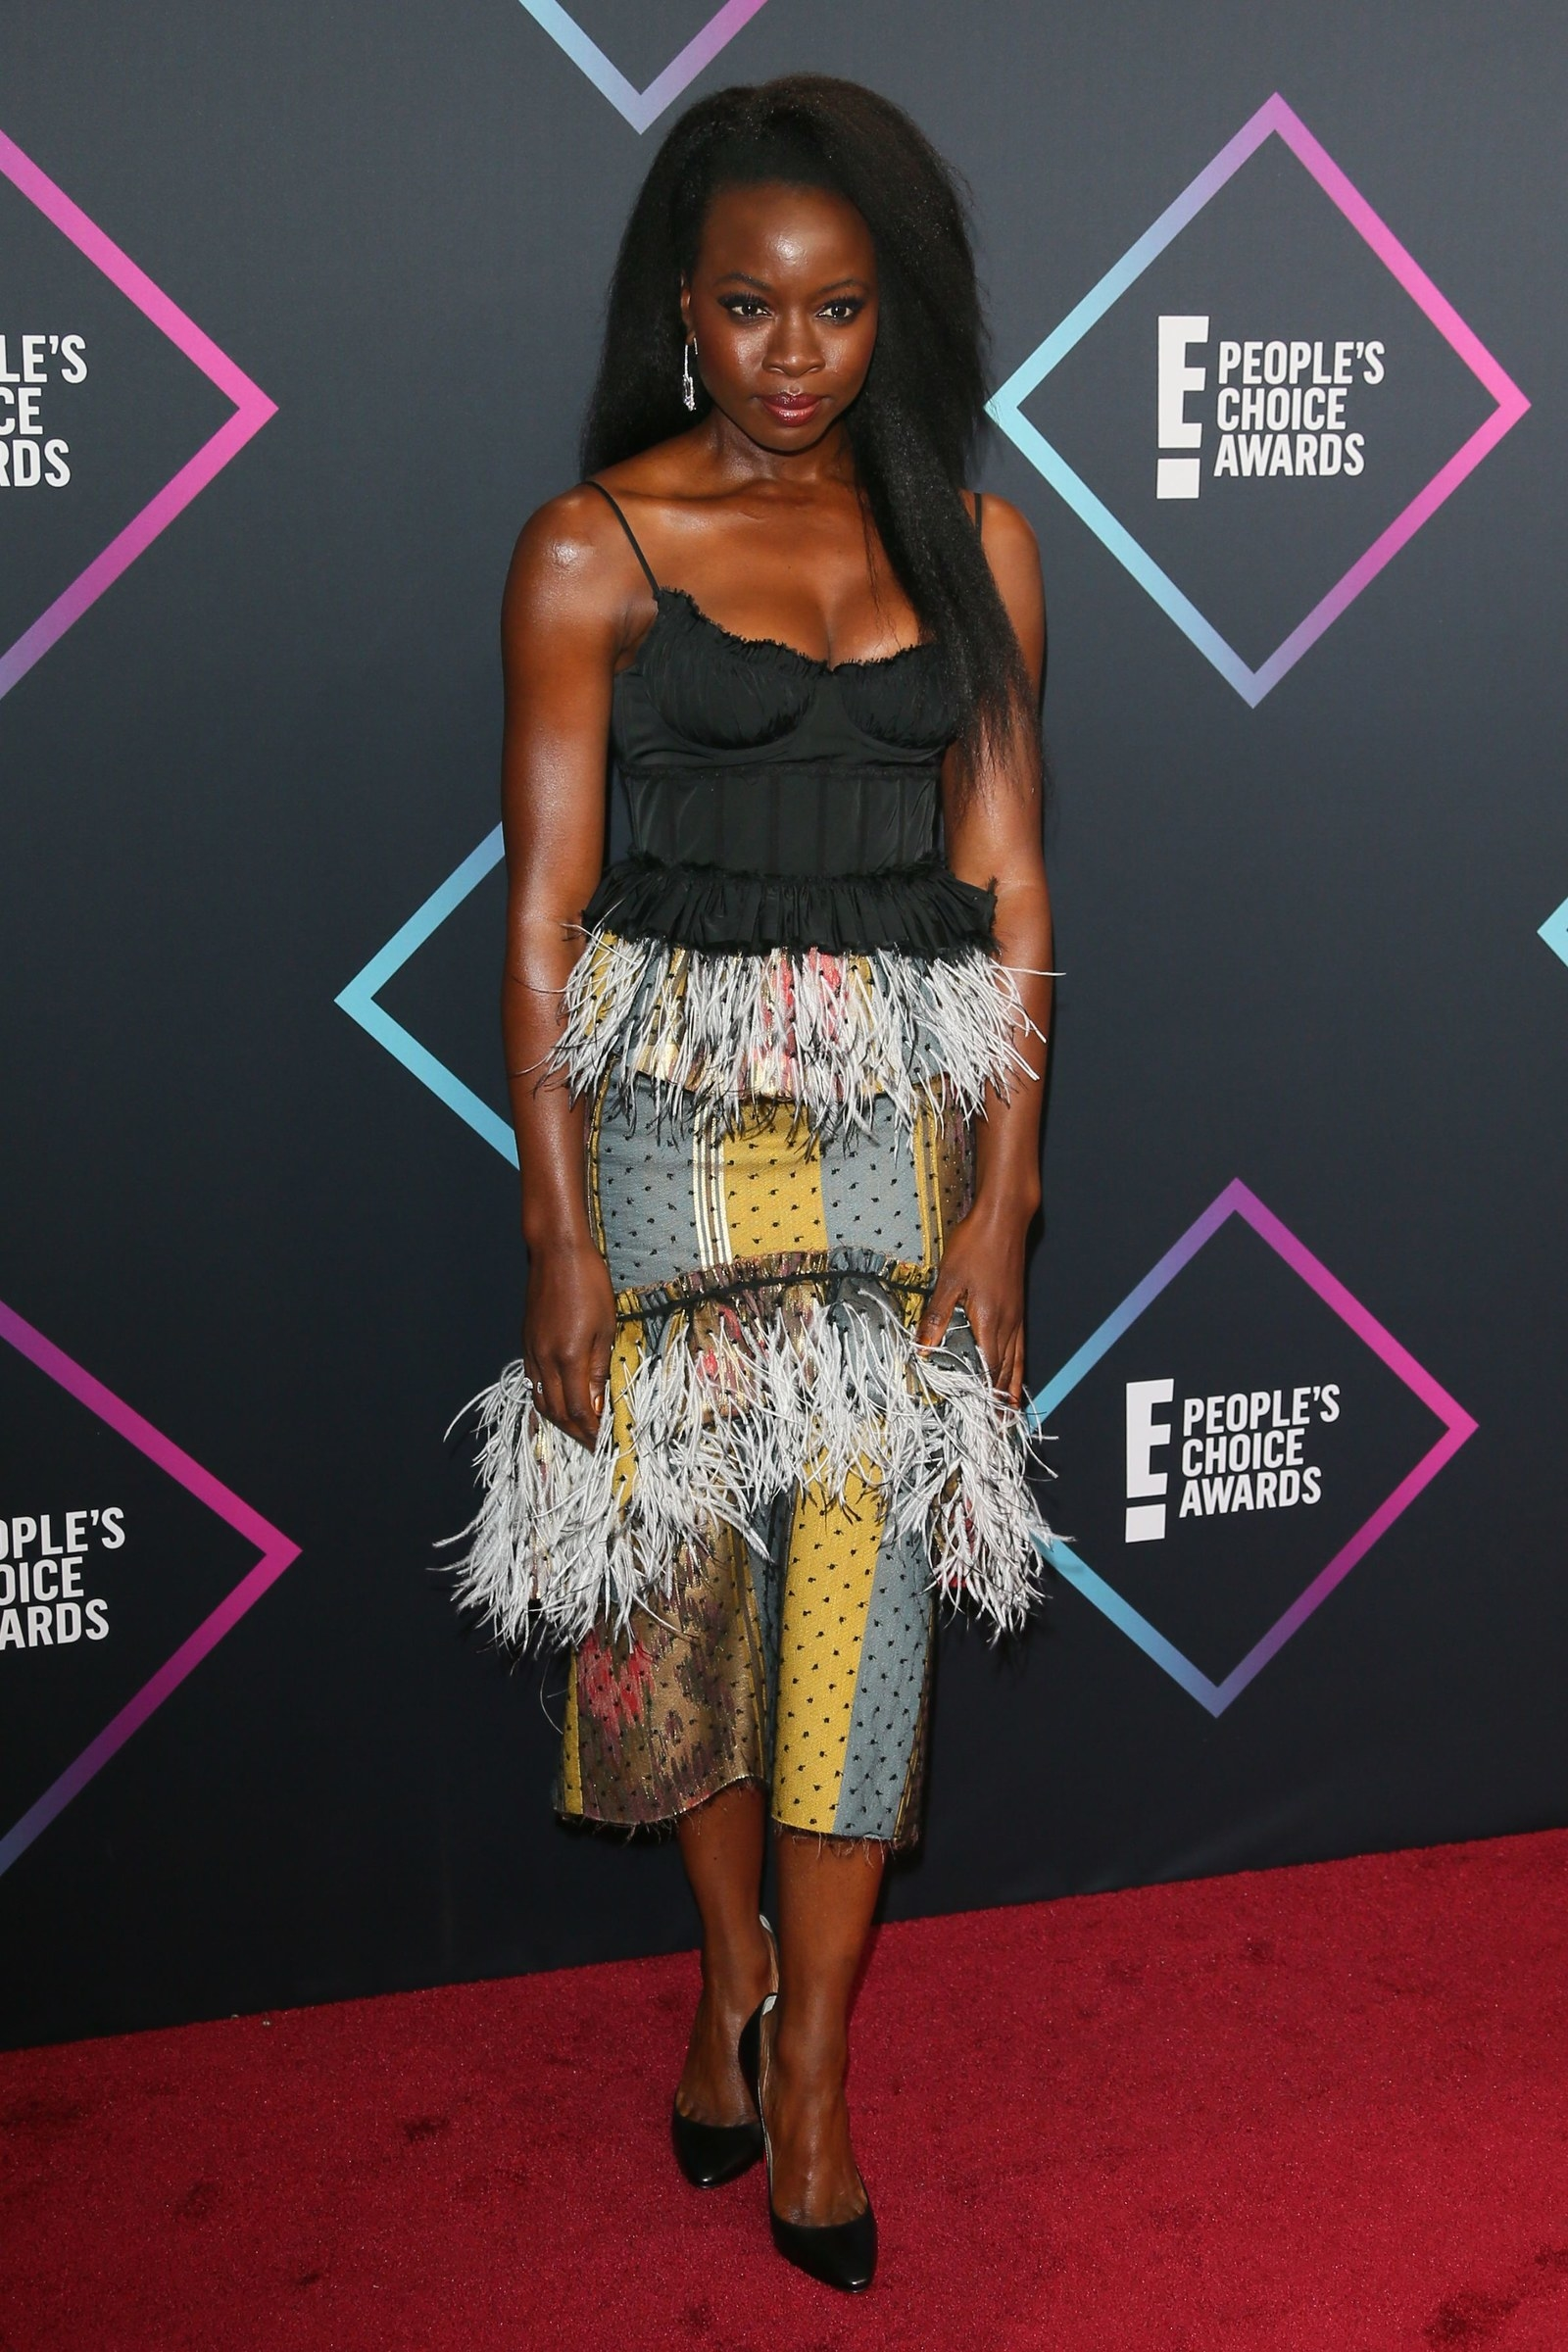 Red Carpet Fashion At The People's Choice Awards